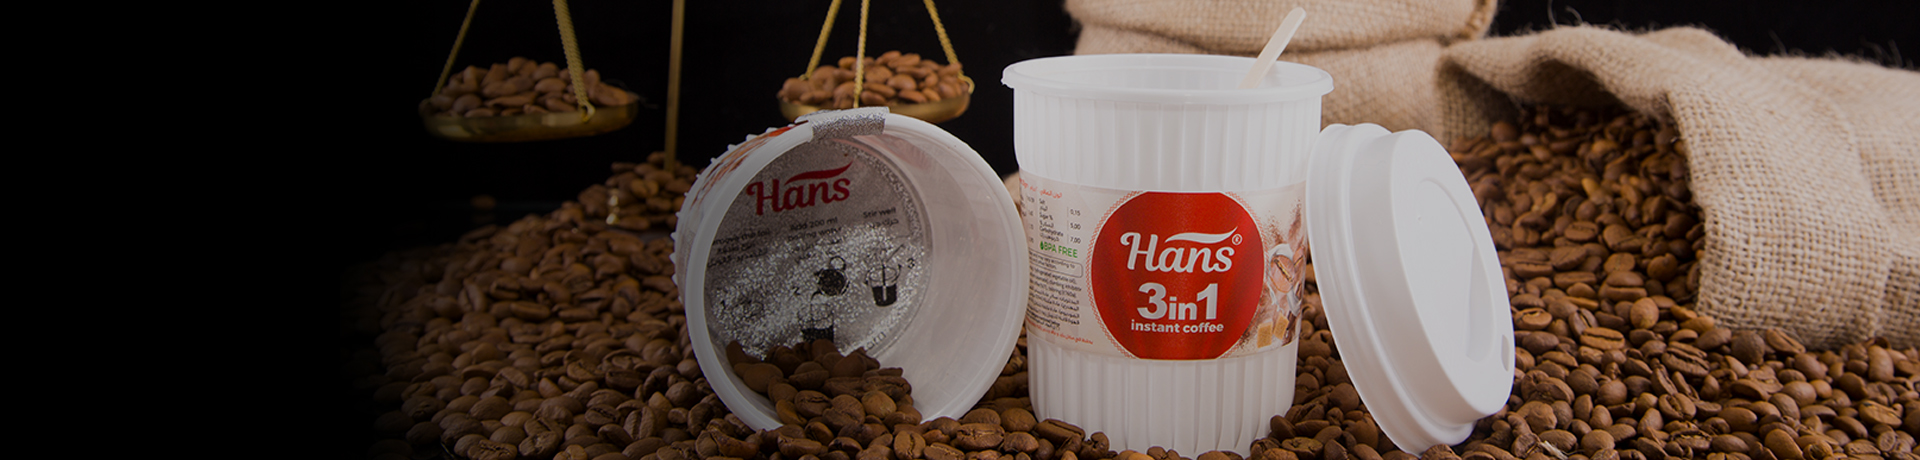 Hans 3in1 Instant Coffee In Cup